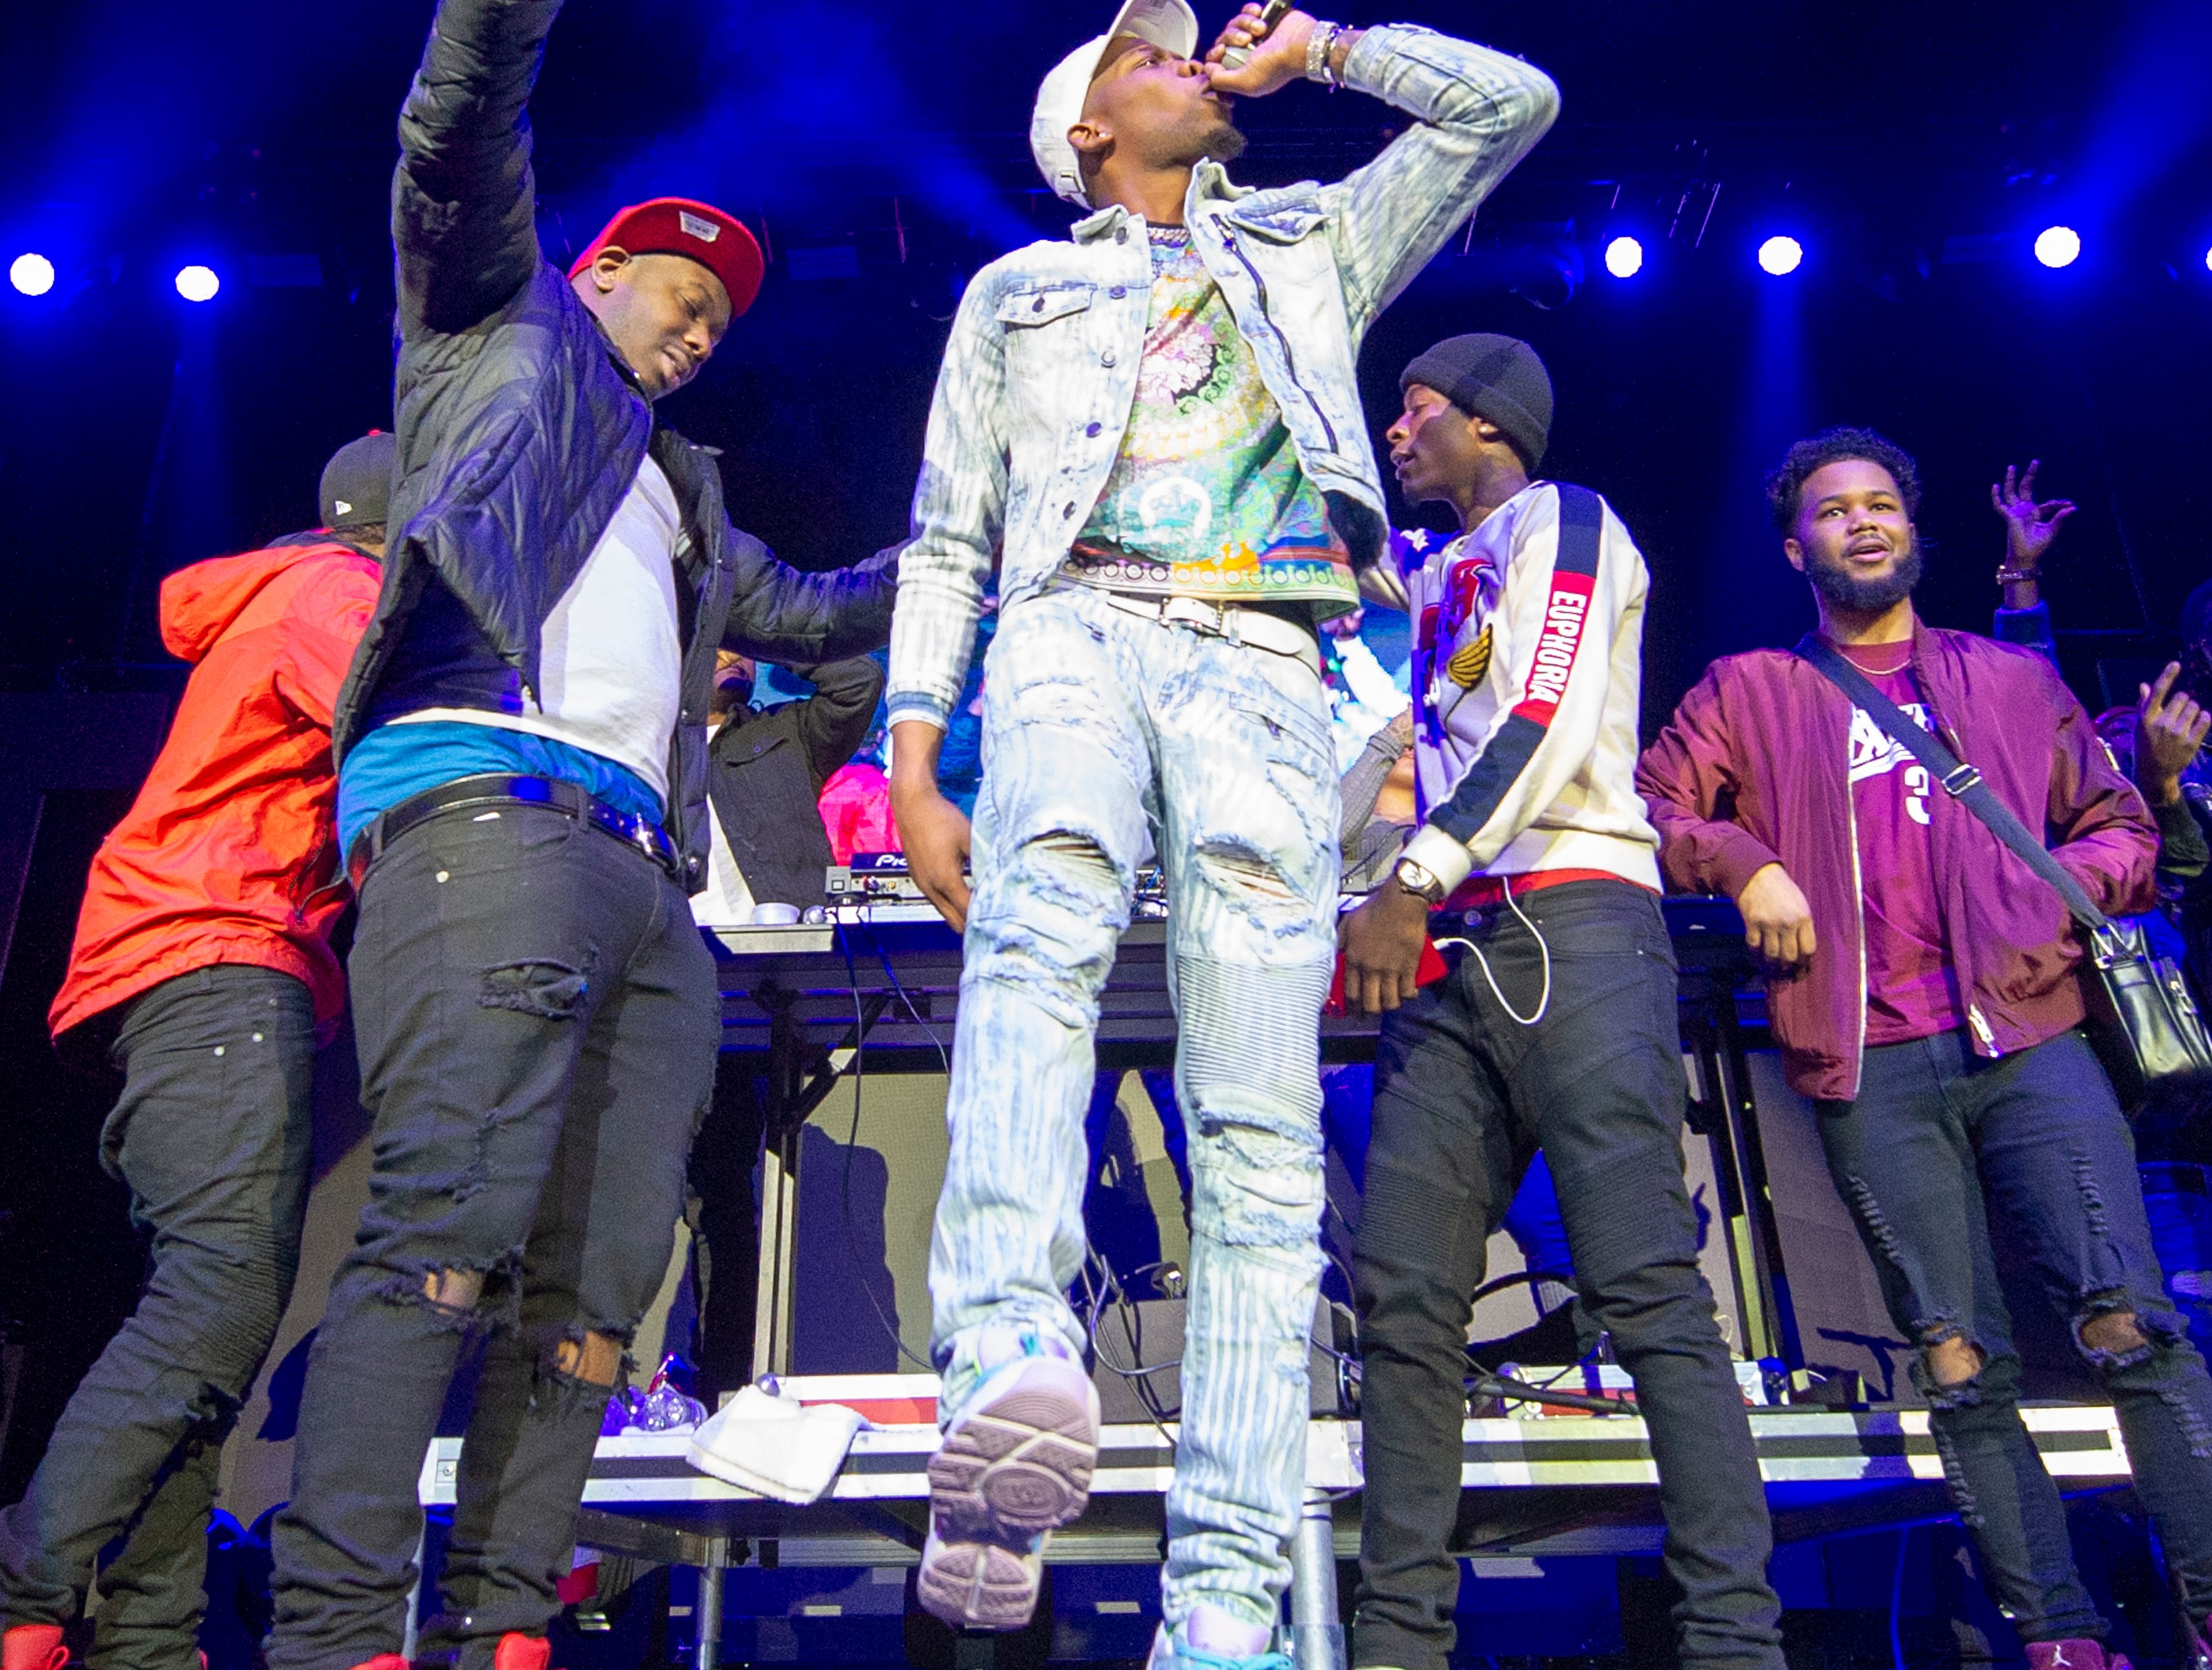 """BlocBoy JB performs on stage. Radio stations Hot 96.3 and Radio Now 100.9 hosted the annual """"Santa Slam"""" concert, featuring American hip hop trio Migos, in the Indiana Farmers Coliseum at the Indiana State Fairgrounds in Indianapolis, Sunday, Dec. 9, 2018."""